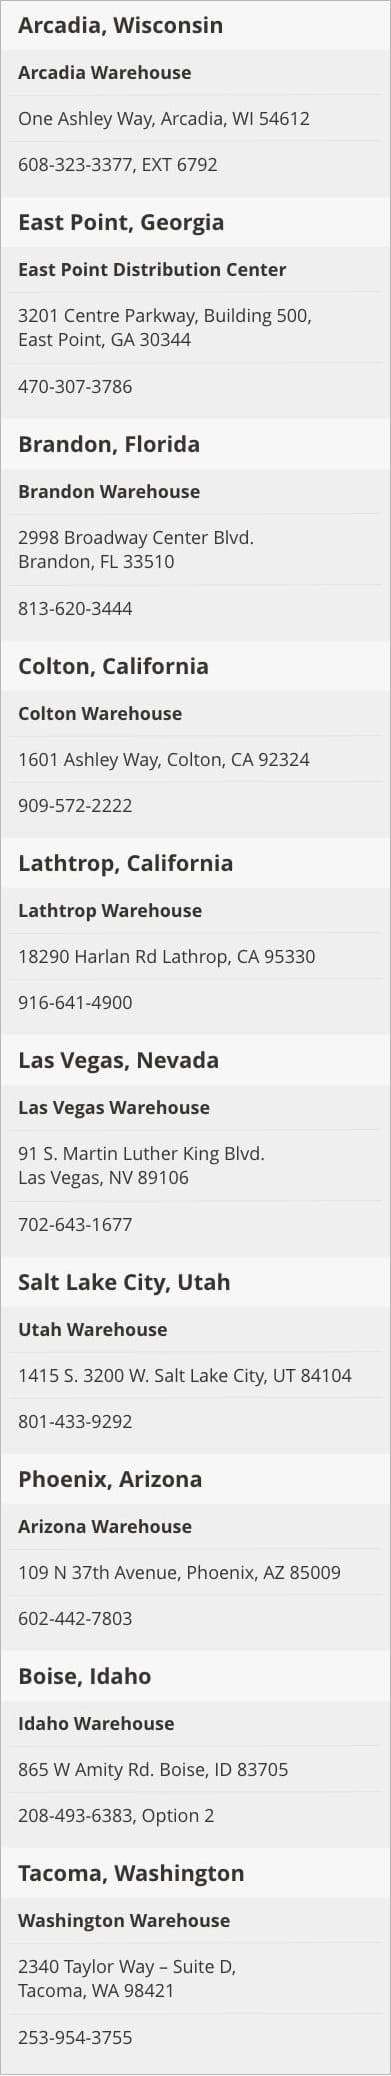 Warehouse Pickup Locations